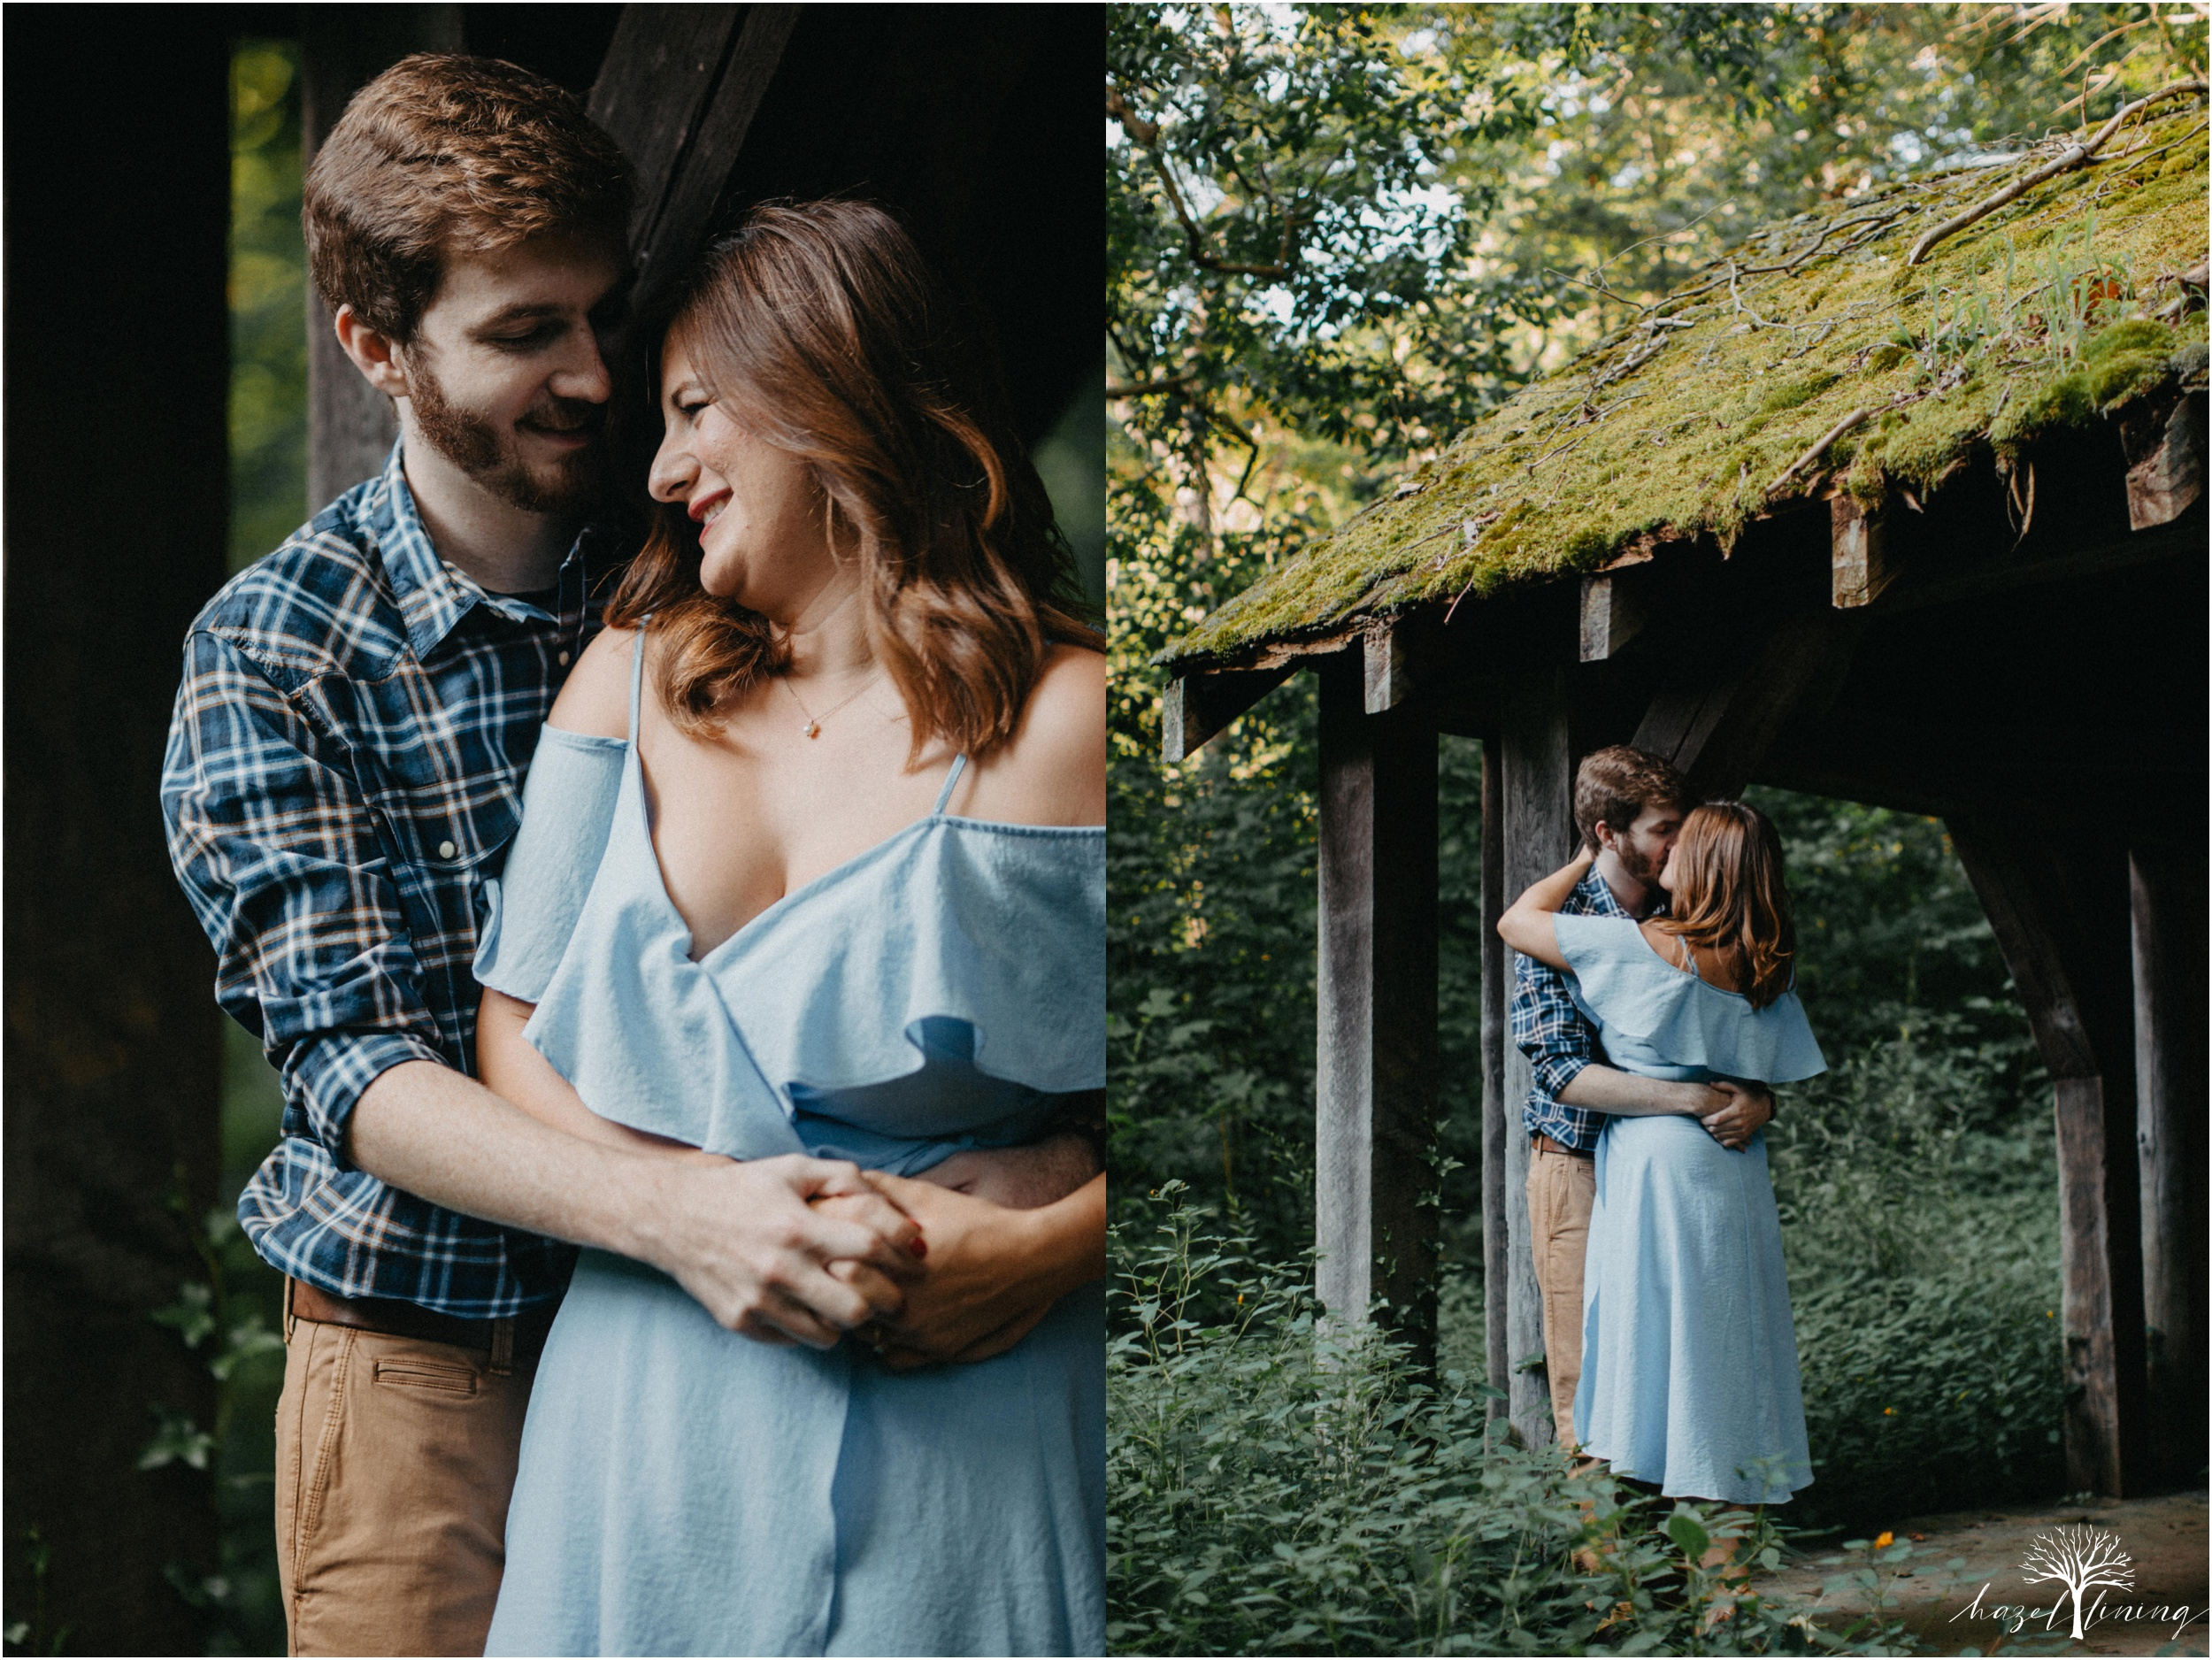 paige-kochey-chris-graham-valley-green-wissahickon-park-philadelphia-summer-engagement-session-hazel-lining-photography-destination-elopement-wedding-engagement-photography_0006.jpg